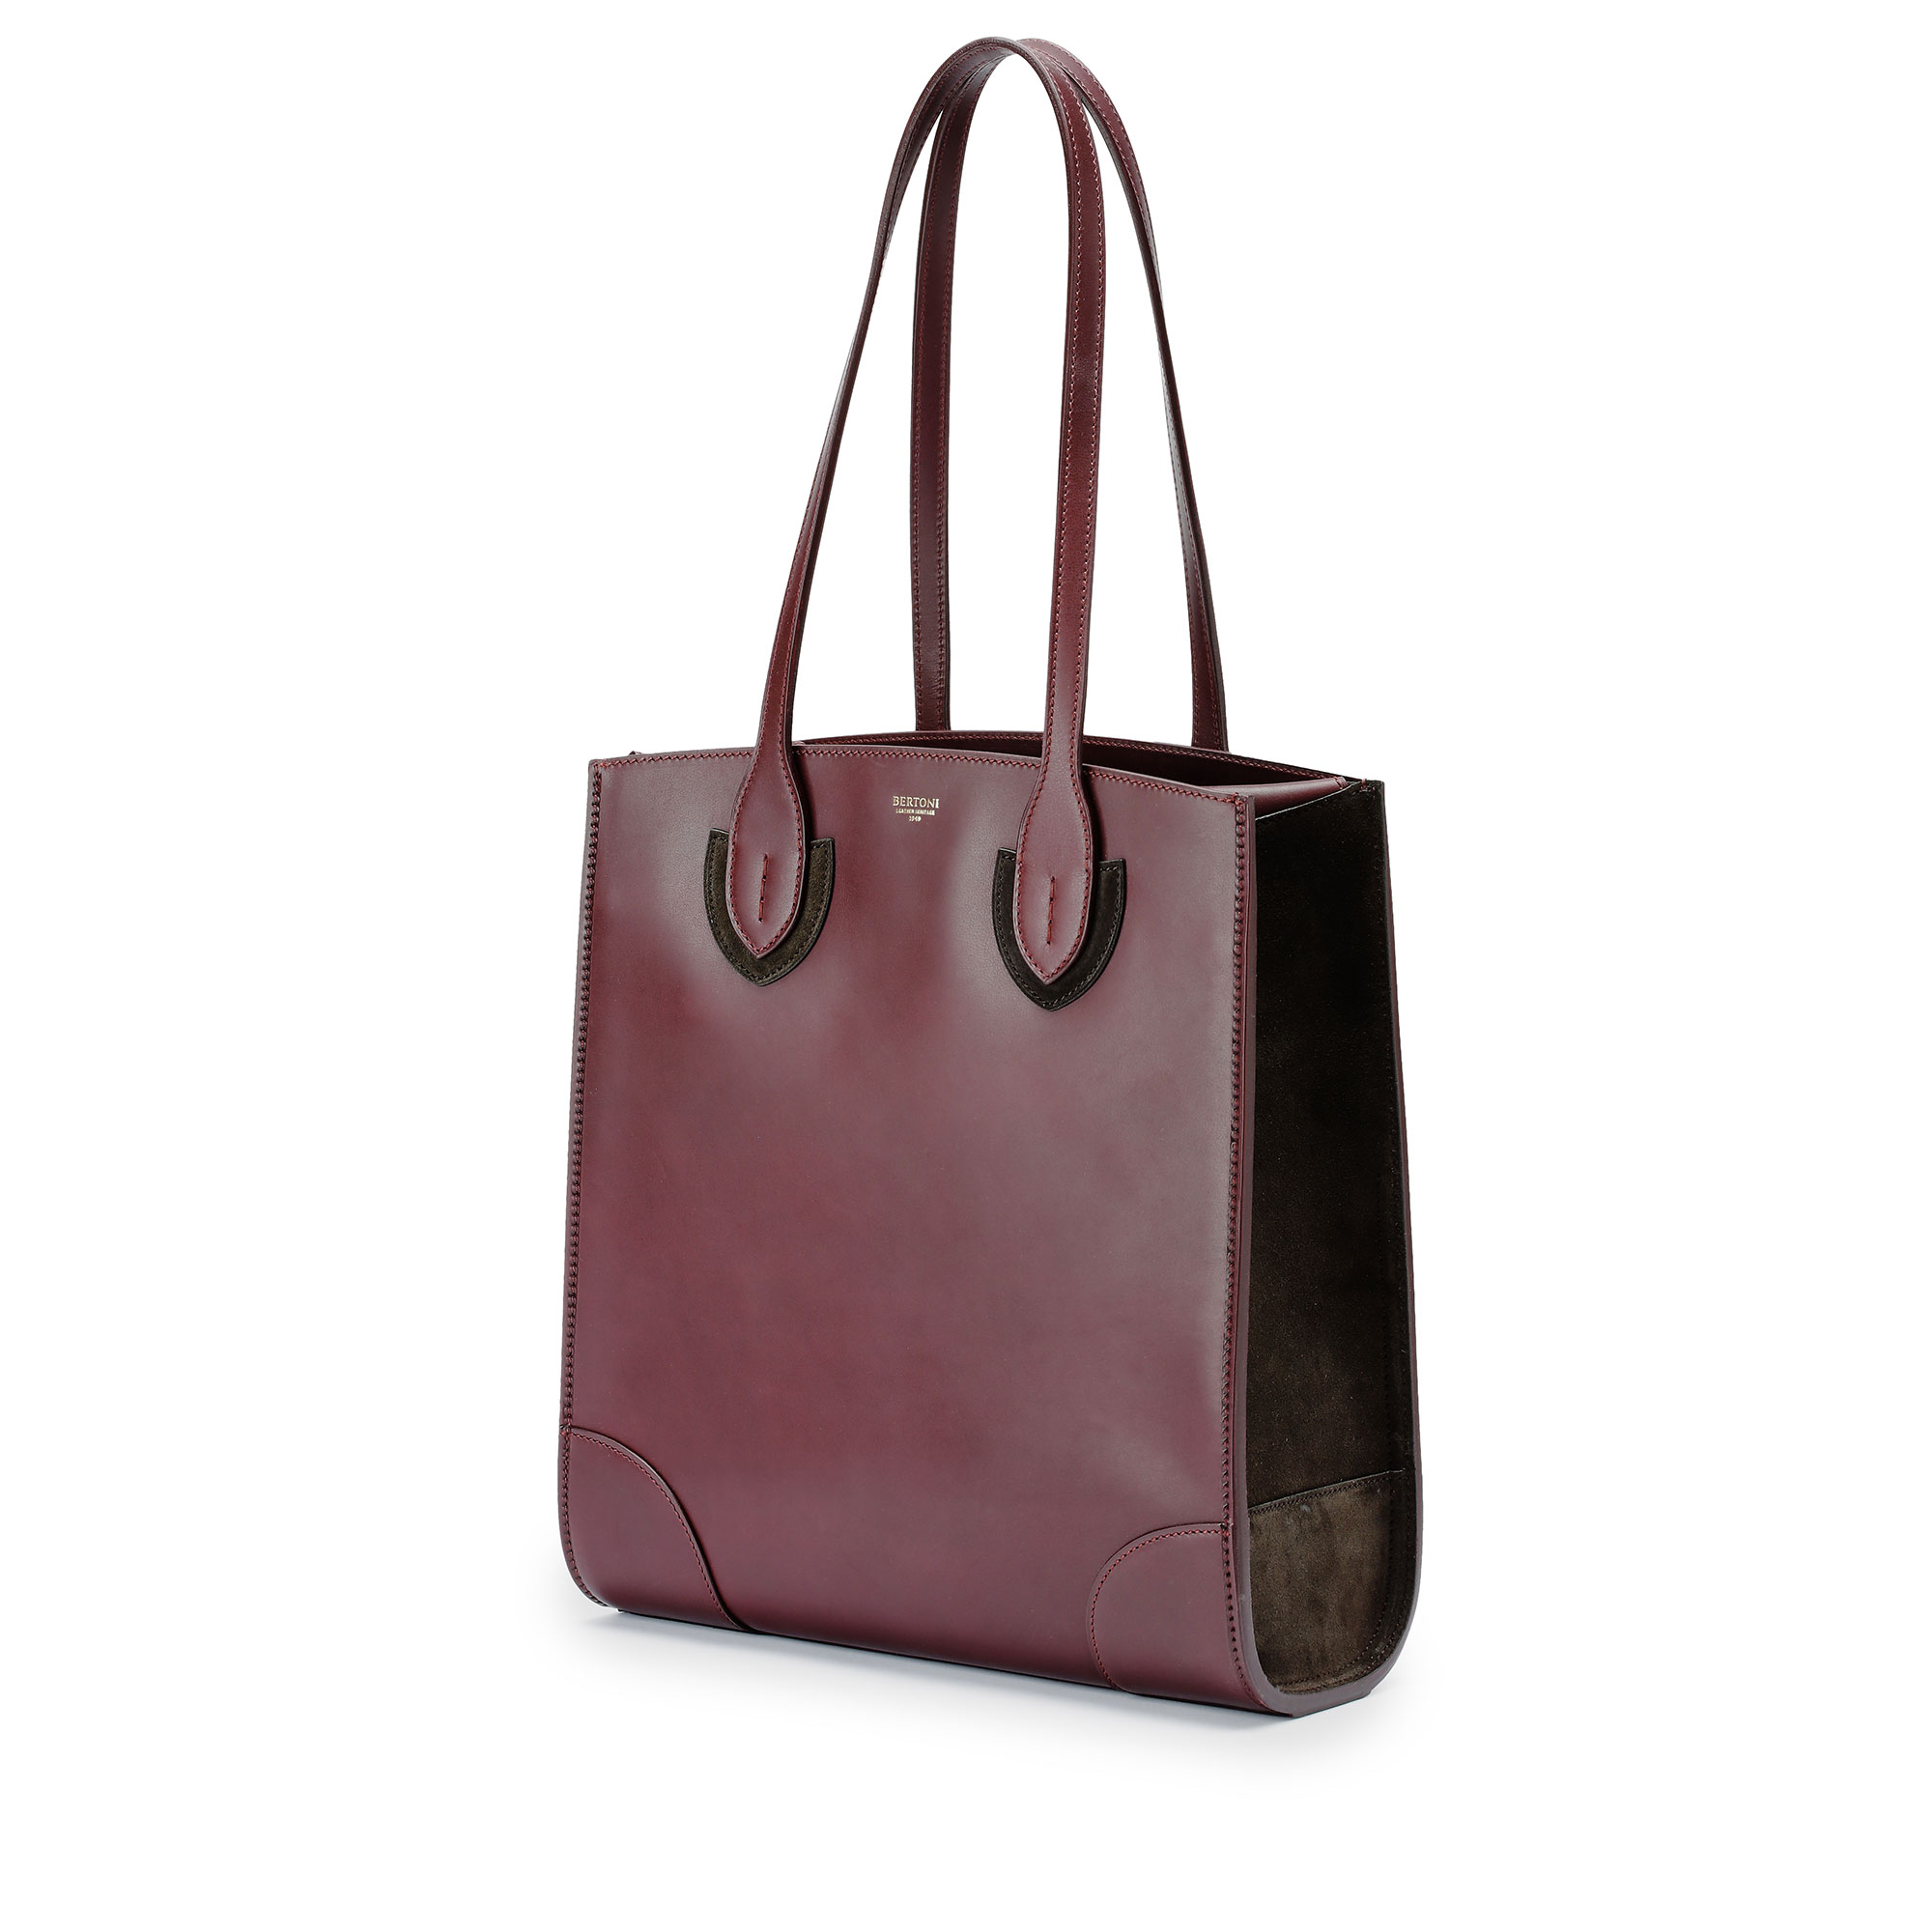 Darcy-Tote-bordeaux-french-calf-bag-Bertoni-1949_01